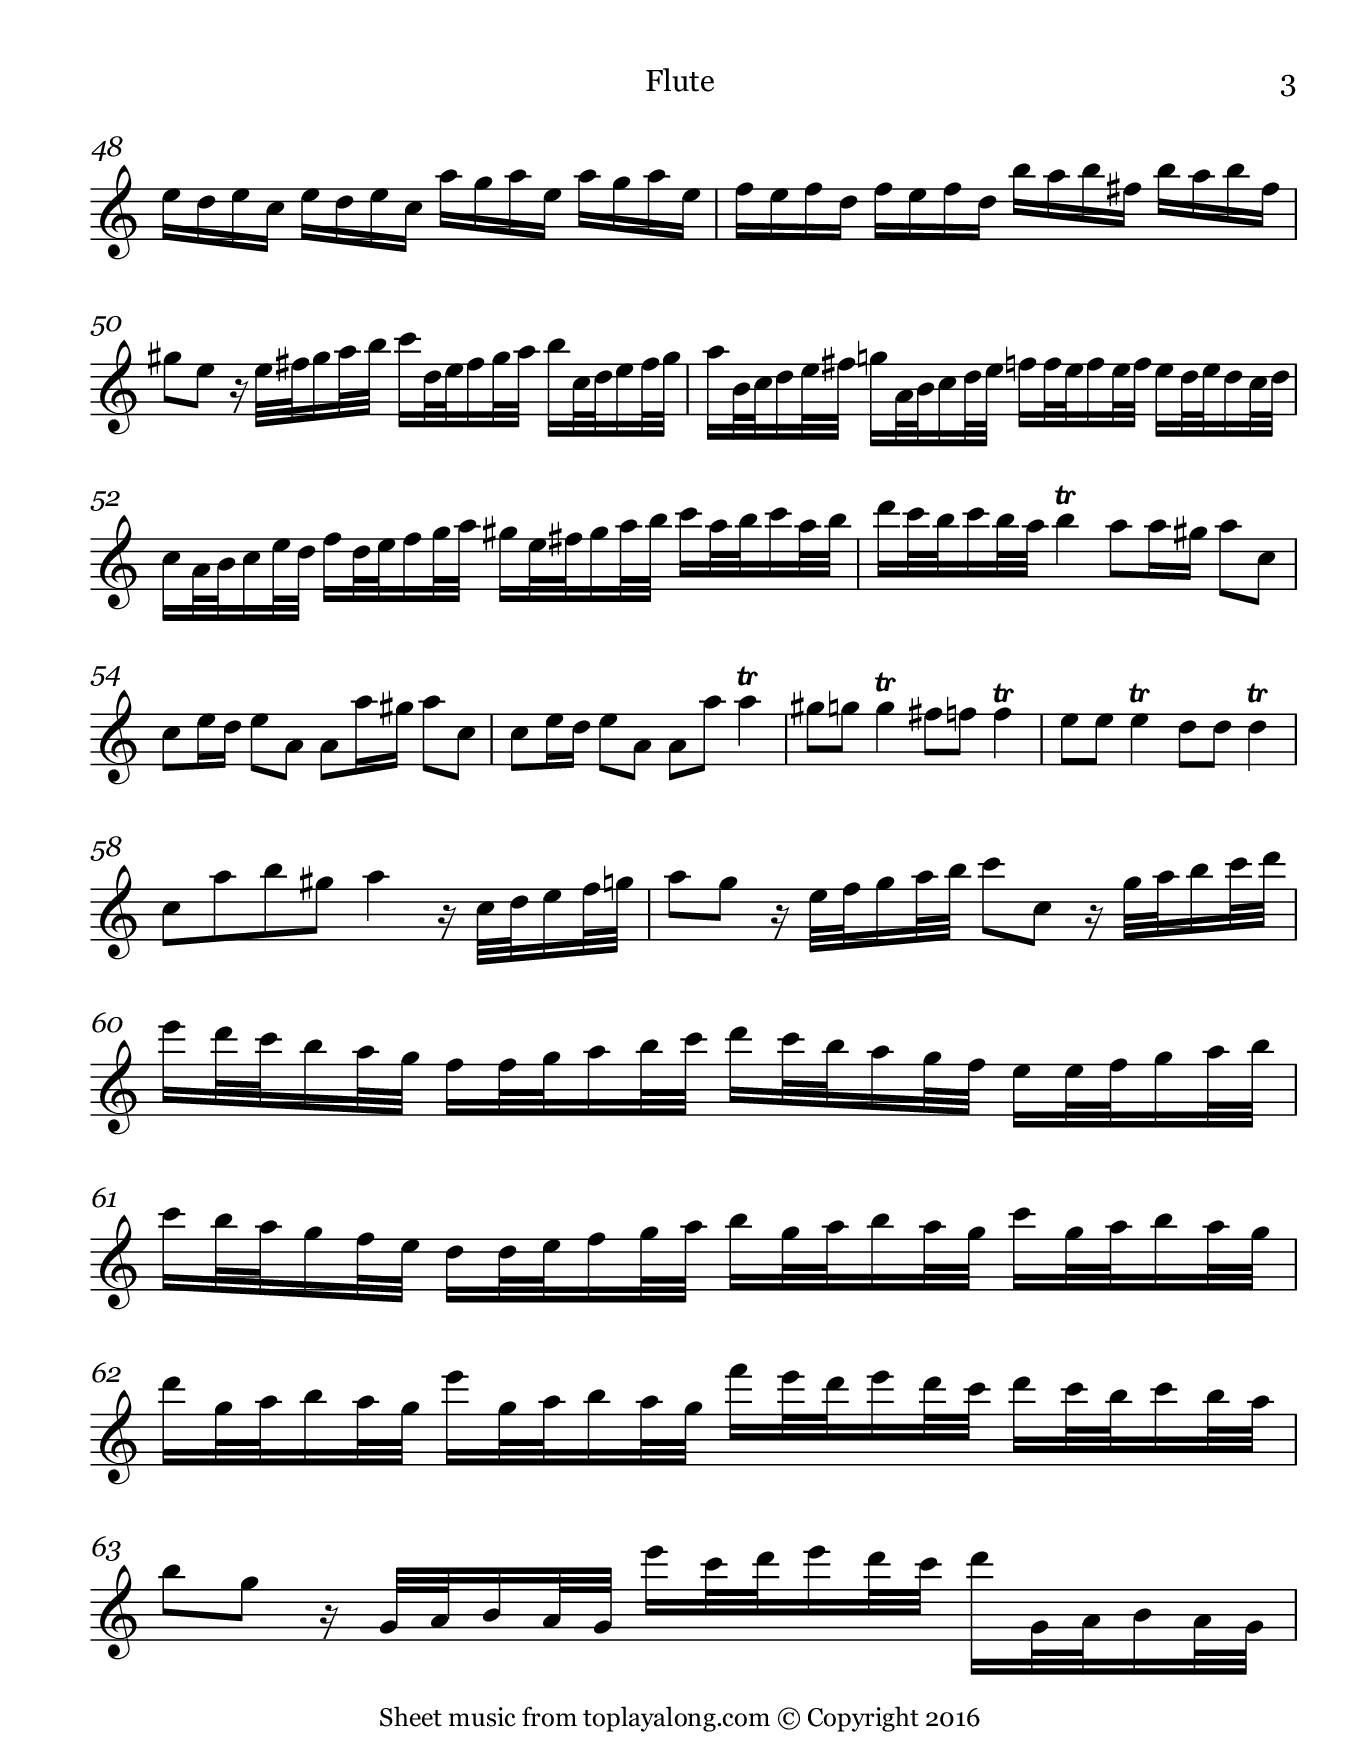 Flautino Concerto in C major RV 443 (III. Allegro molto) by Vivaldi. Sheet music for Flute, page 3.